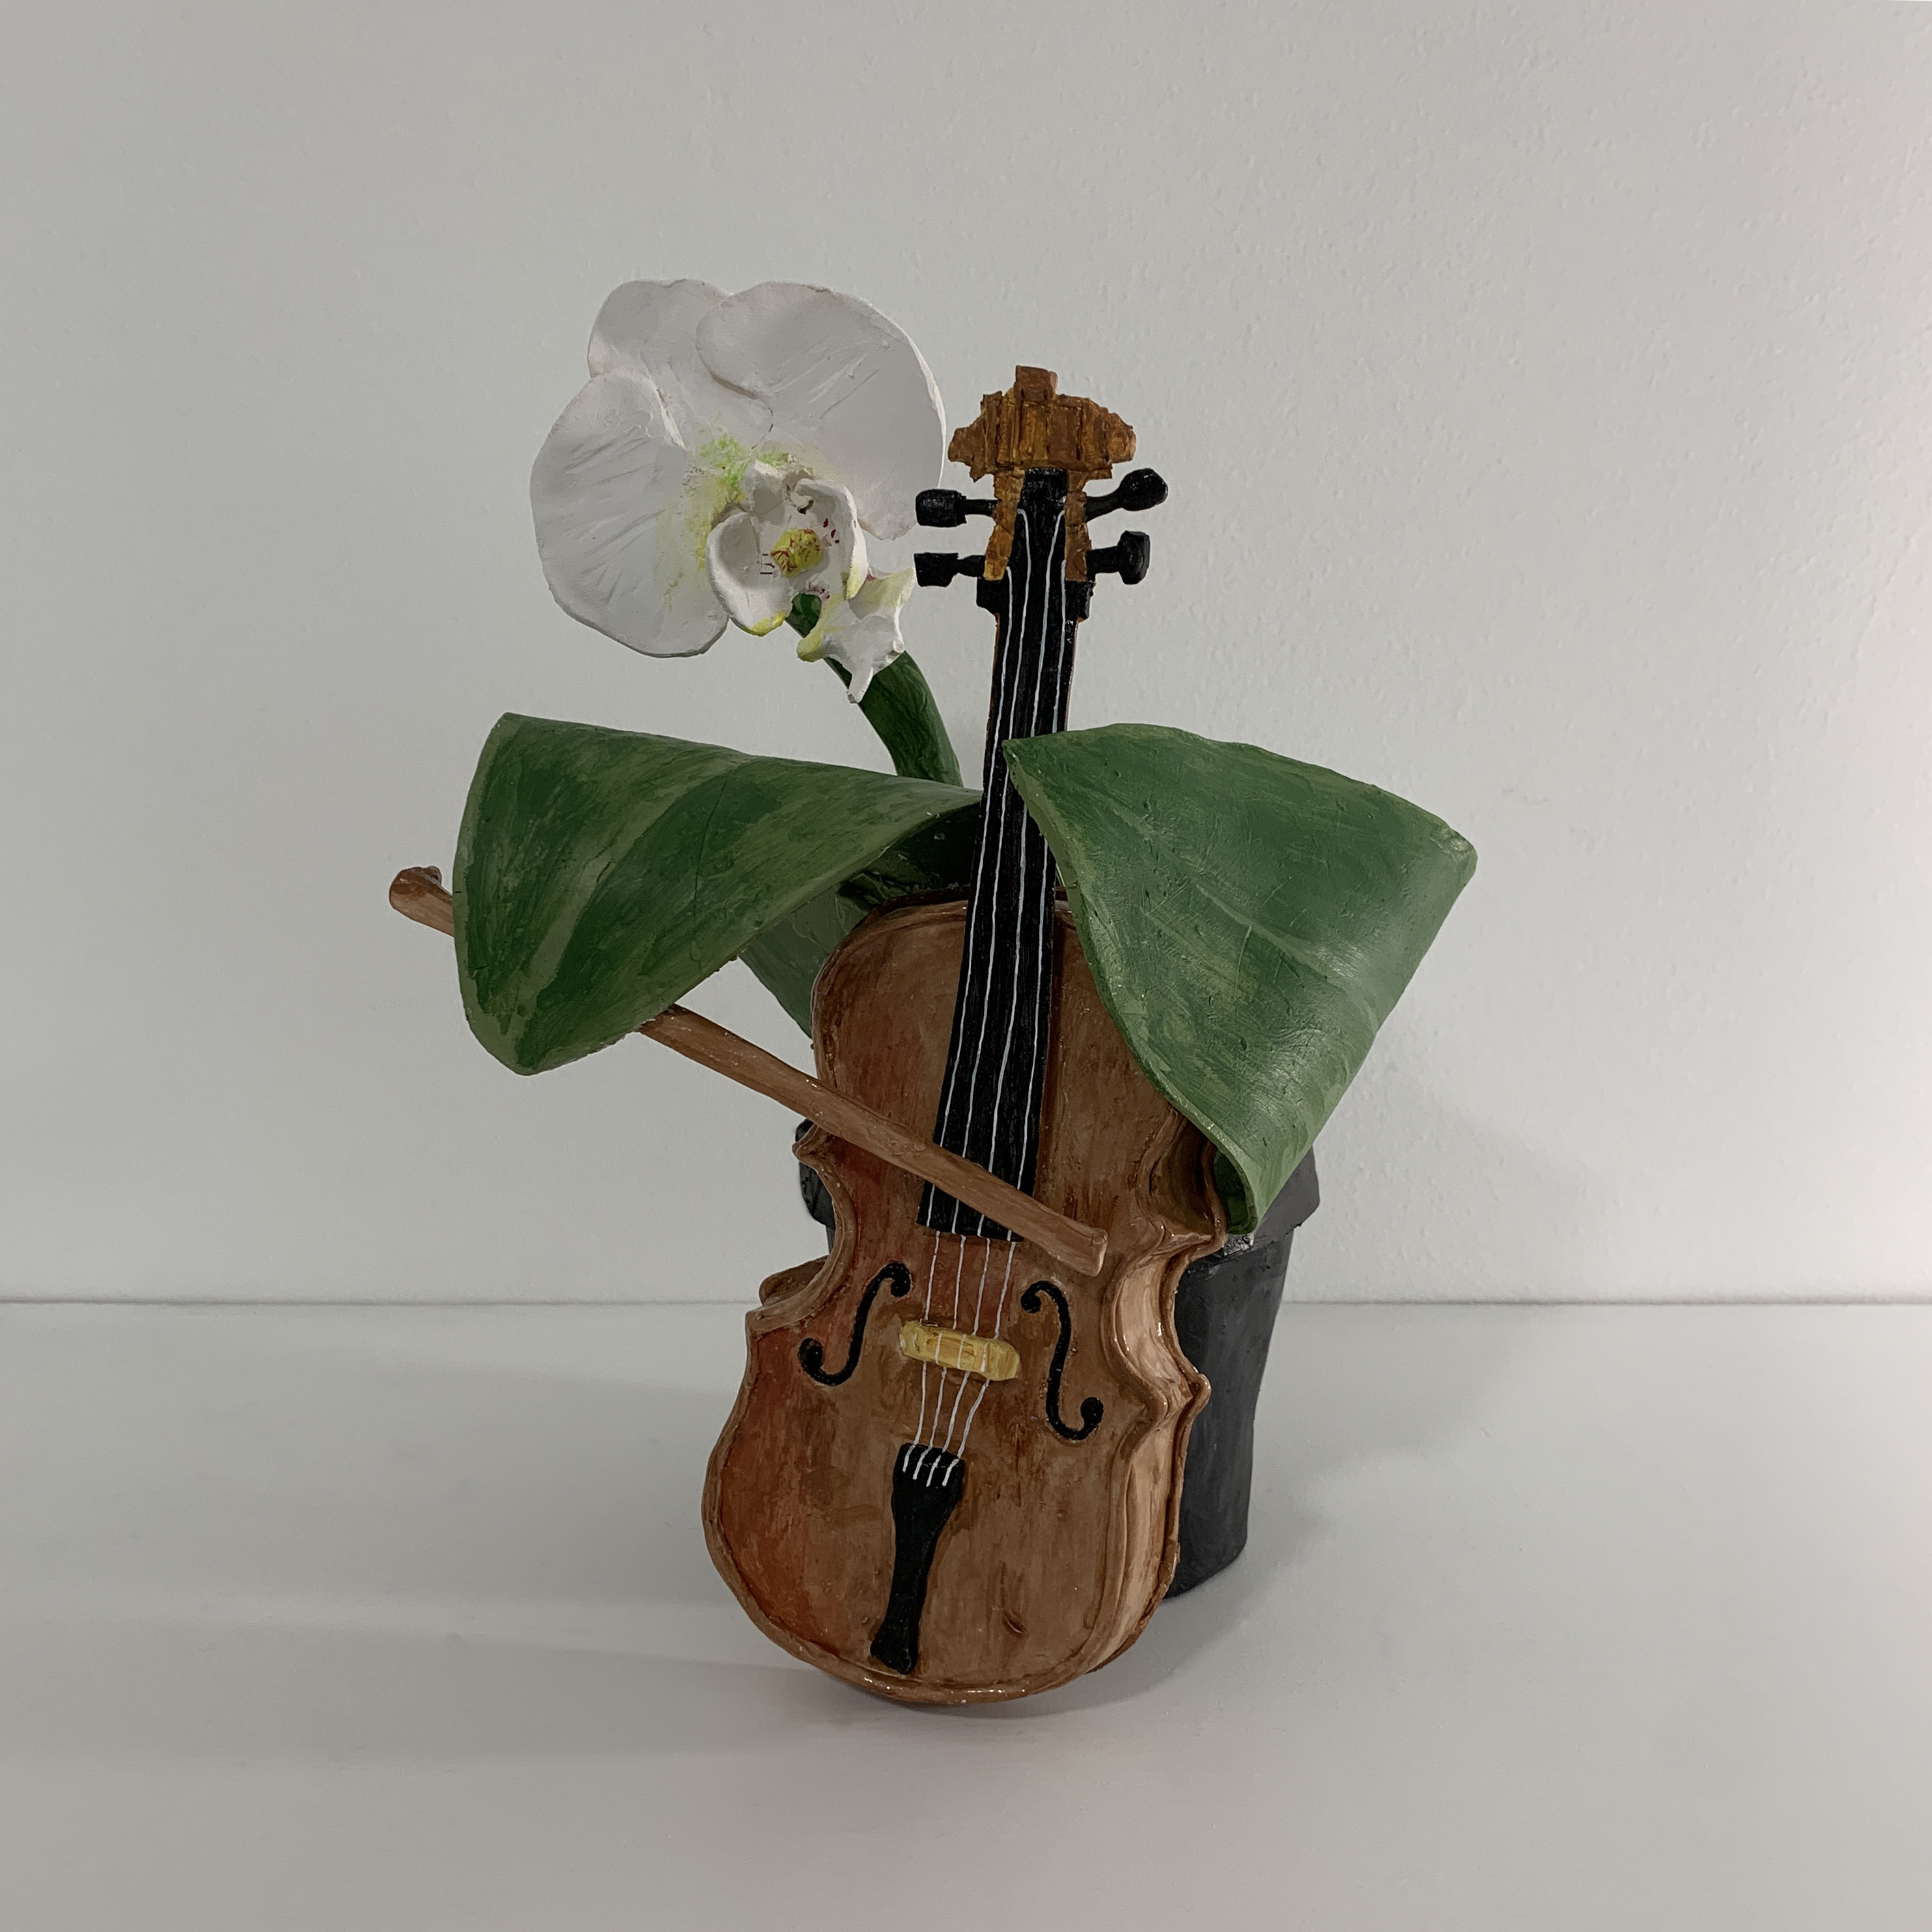 10.-Symphony-Orchid-stra-Cello.-Kenny-Pittock.-2020